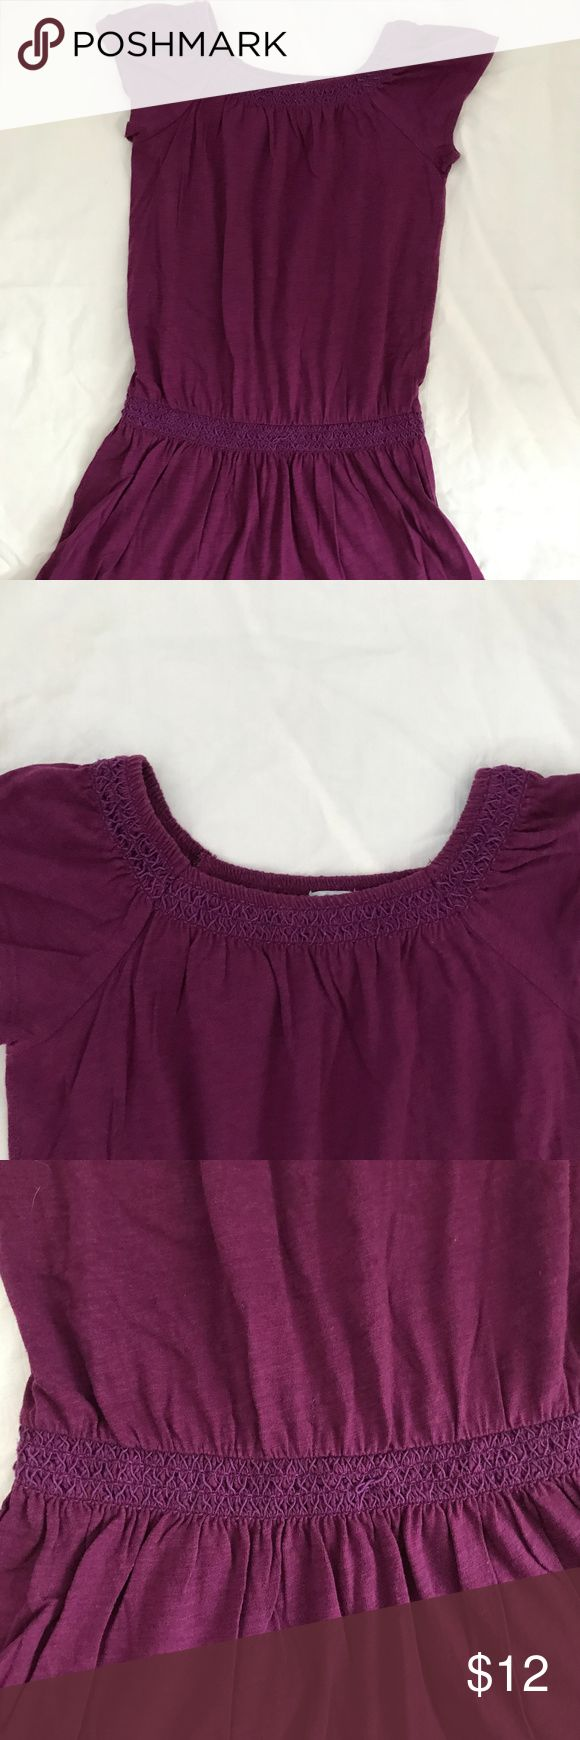 "Gap ""Woodstock"" purple drop-waist boho dress 5T XS Gap ""Woodstock"" collection dress -- This comfy boho dress is a wine purple color.  It has smocked elastic at both the neckline and drop-waist (below the actual waistline).  It may work off the shoulder, as is the current trend, but I never tried that.  The fabric is 100% cotton.  The panty cover is also included.  The size is 5T, but my daughter wore this when she was in Gap XS 4-5.  It's in excellent condition with no damage.  This was a…"